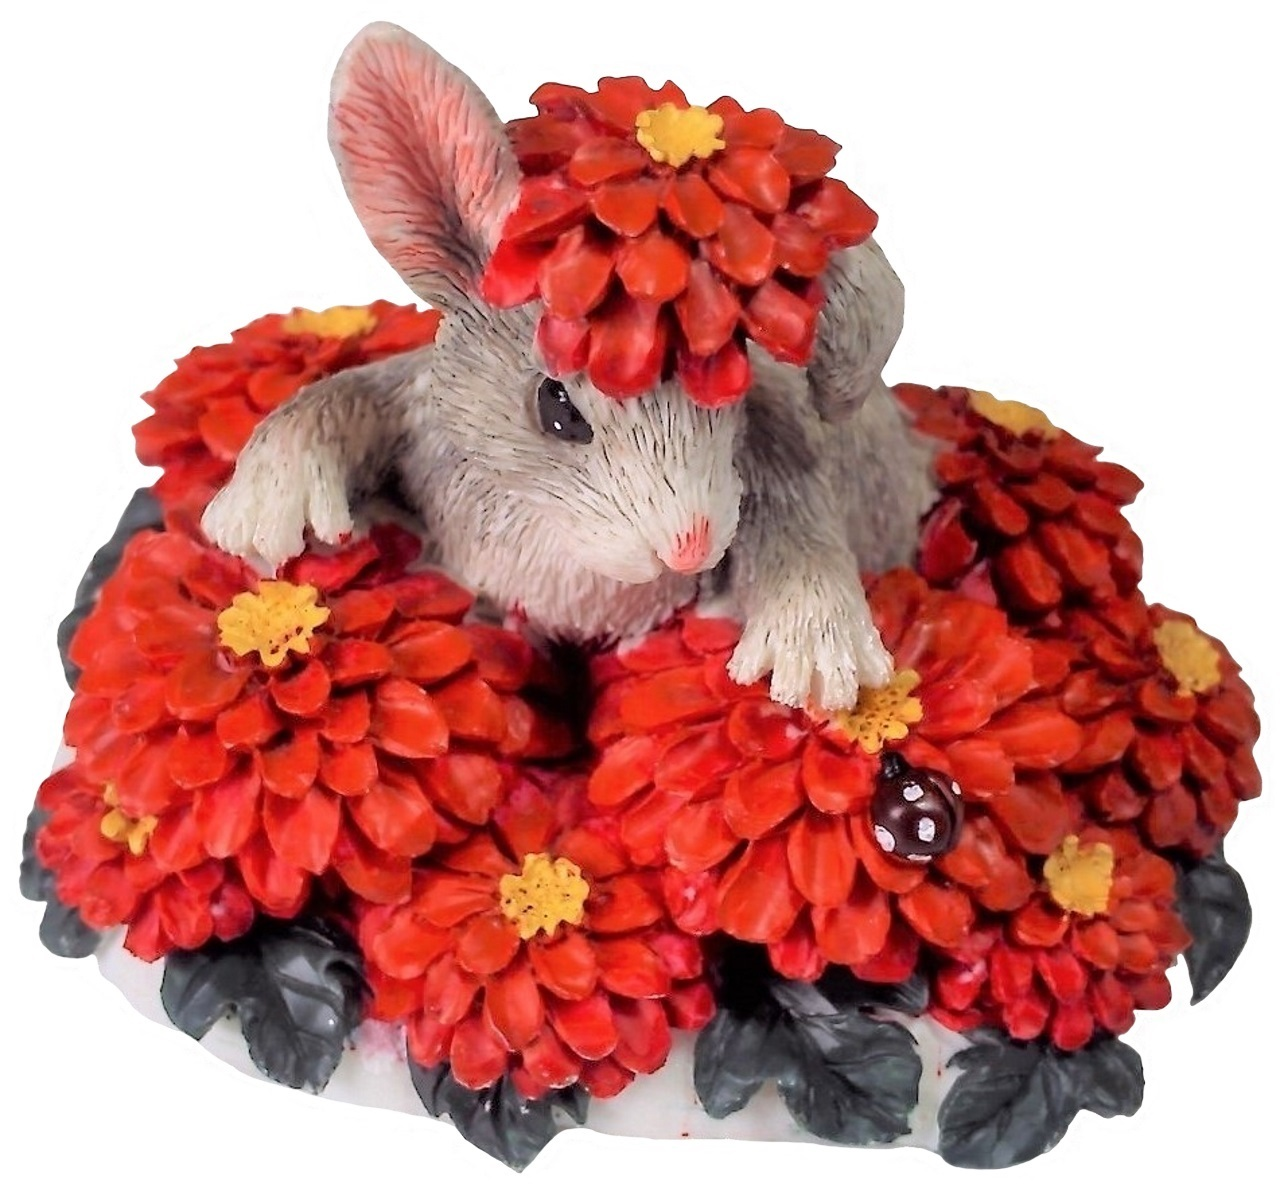 Primary image for Charming Tails Binkey in a Bed of Flowers 1995 Edition 887/426